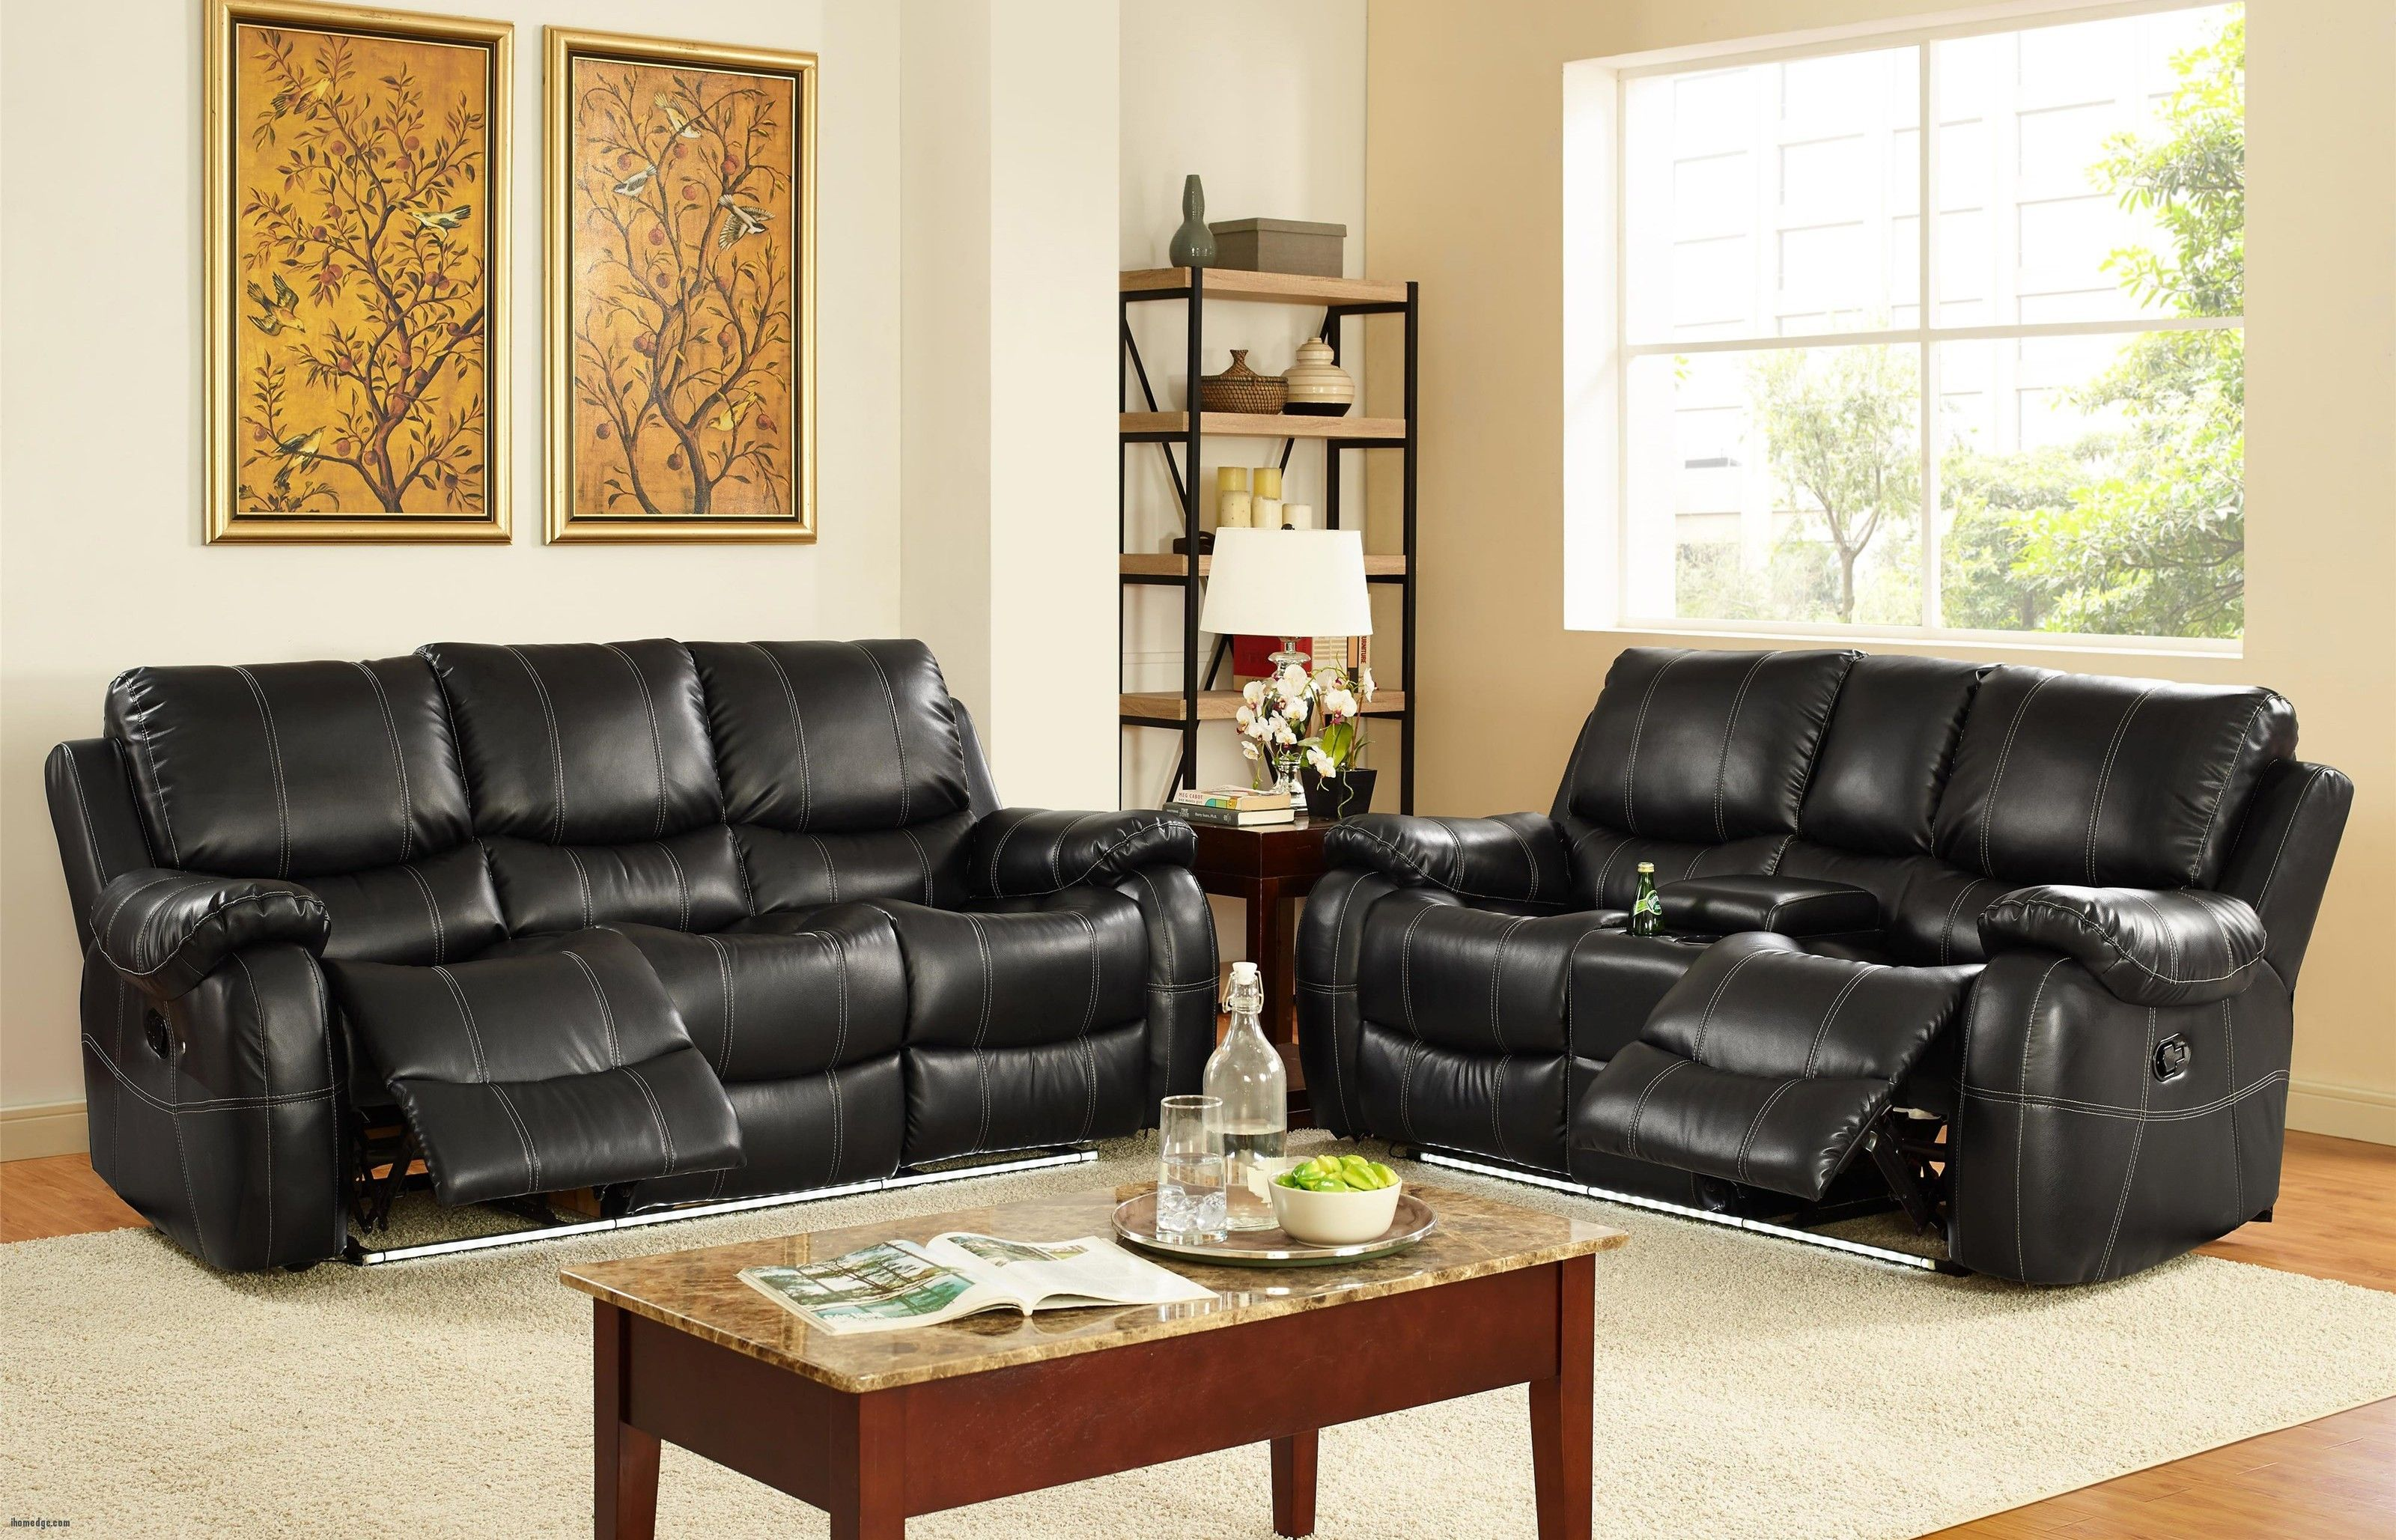 Best Awesome Couch And Recliner Set , Lynx Collection 2 Piece Living Room  Recliner Sofa Set